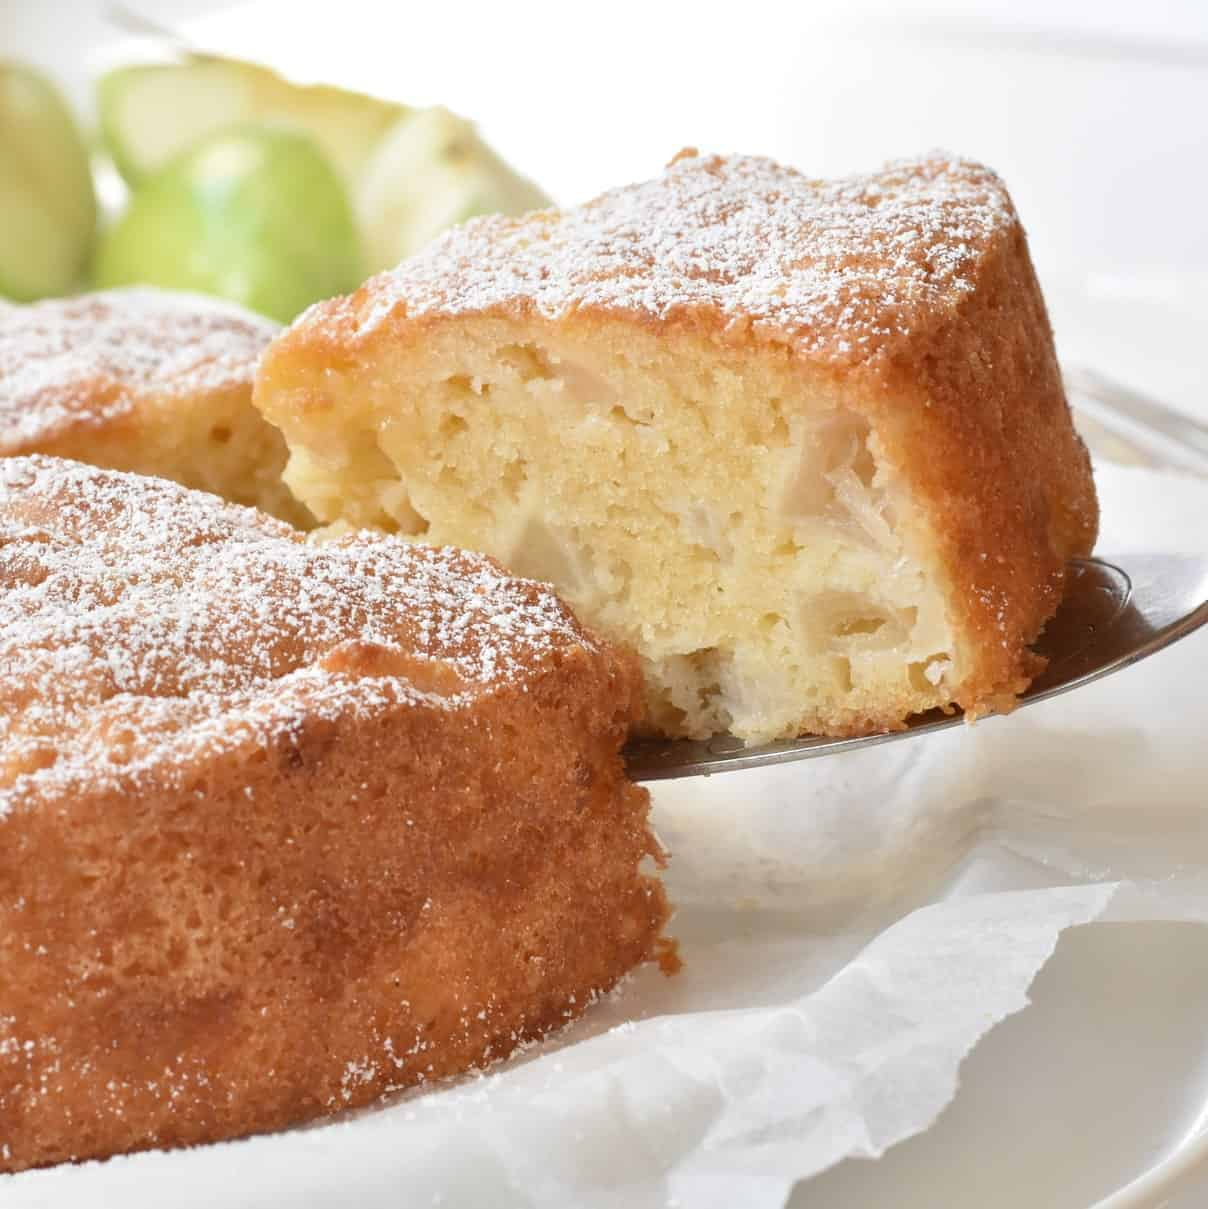 French Apple Cake slice being lifted from plate.